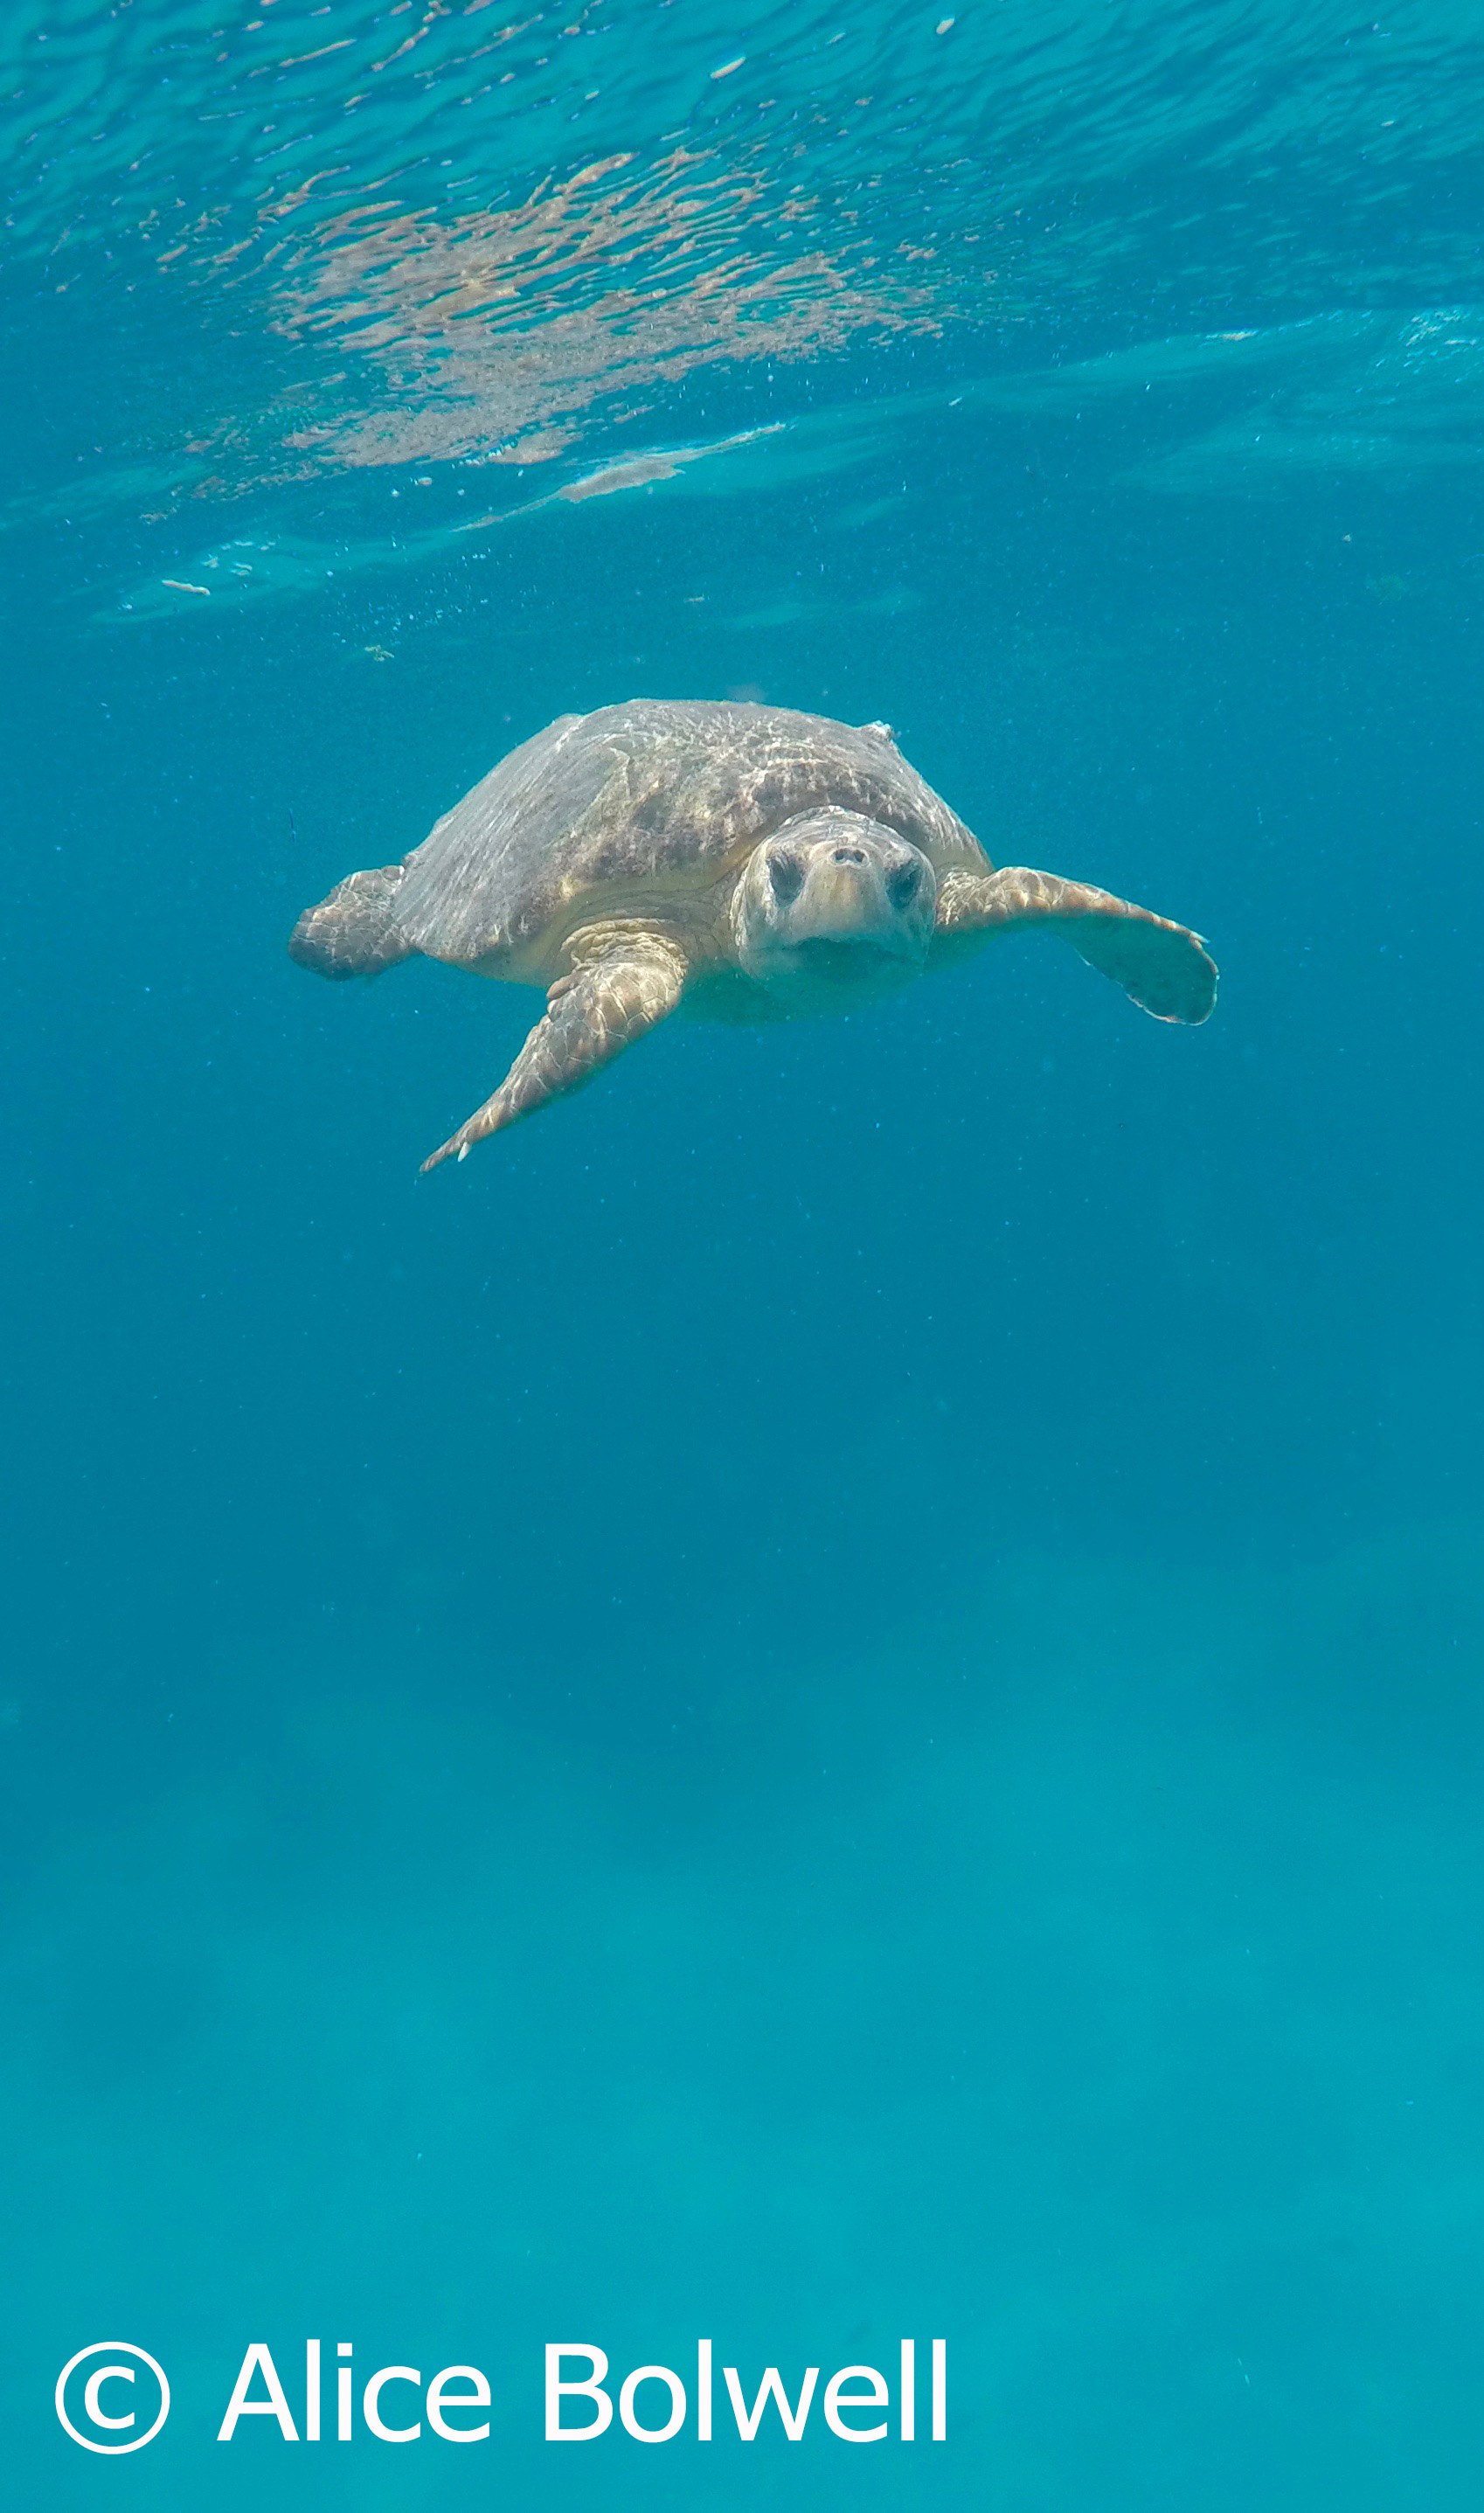 Alice saw and photographed a loggerhead turtle - so the dive wasn't a complete waste of time.